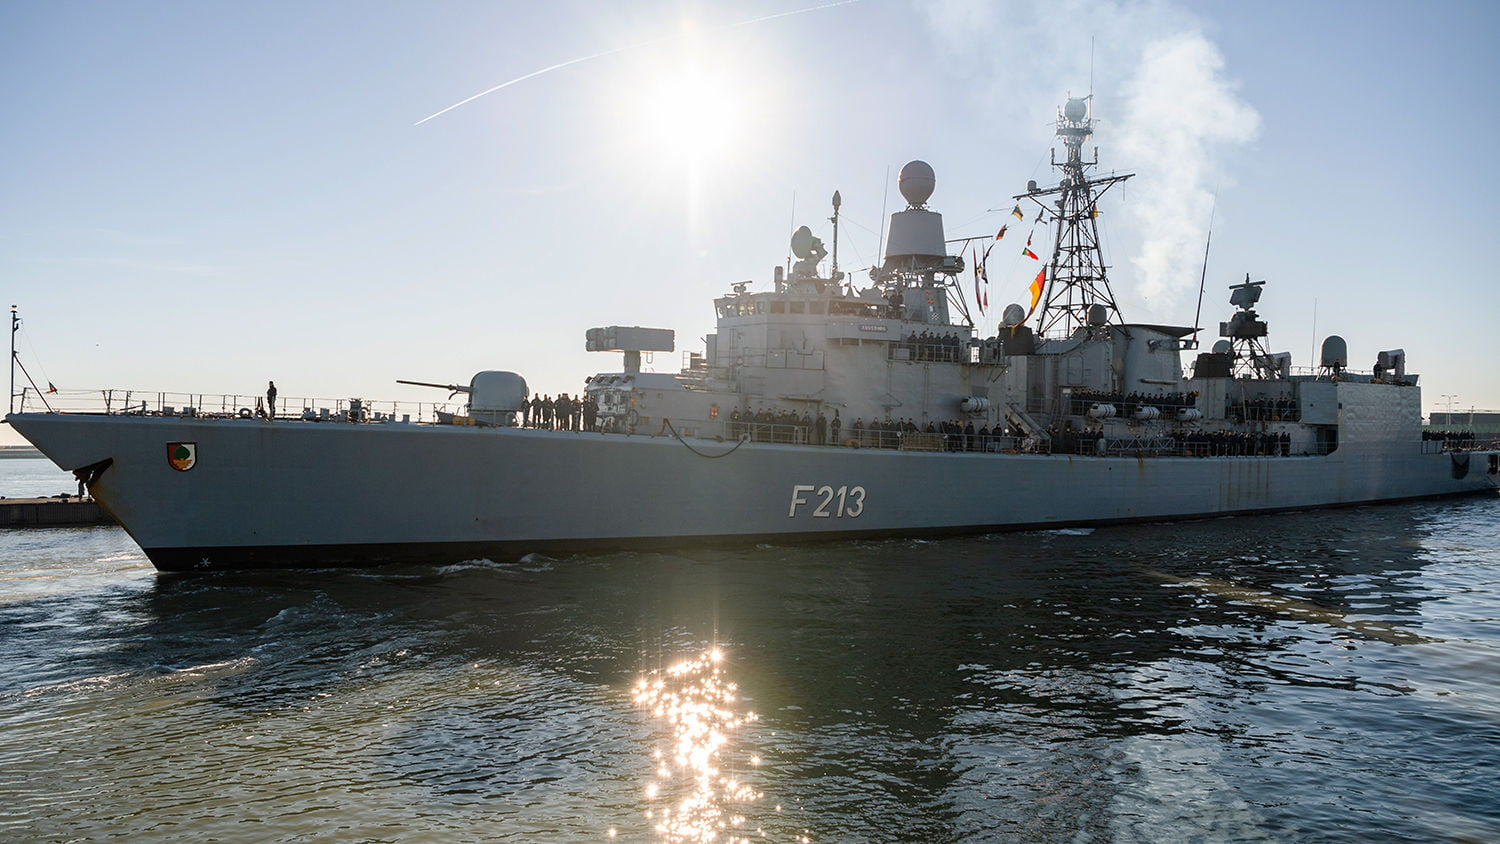 Germany will send a frigate with 250 soldiers as part of the Irini mission in the Mediterranean